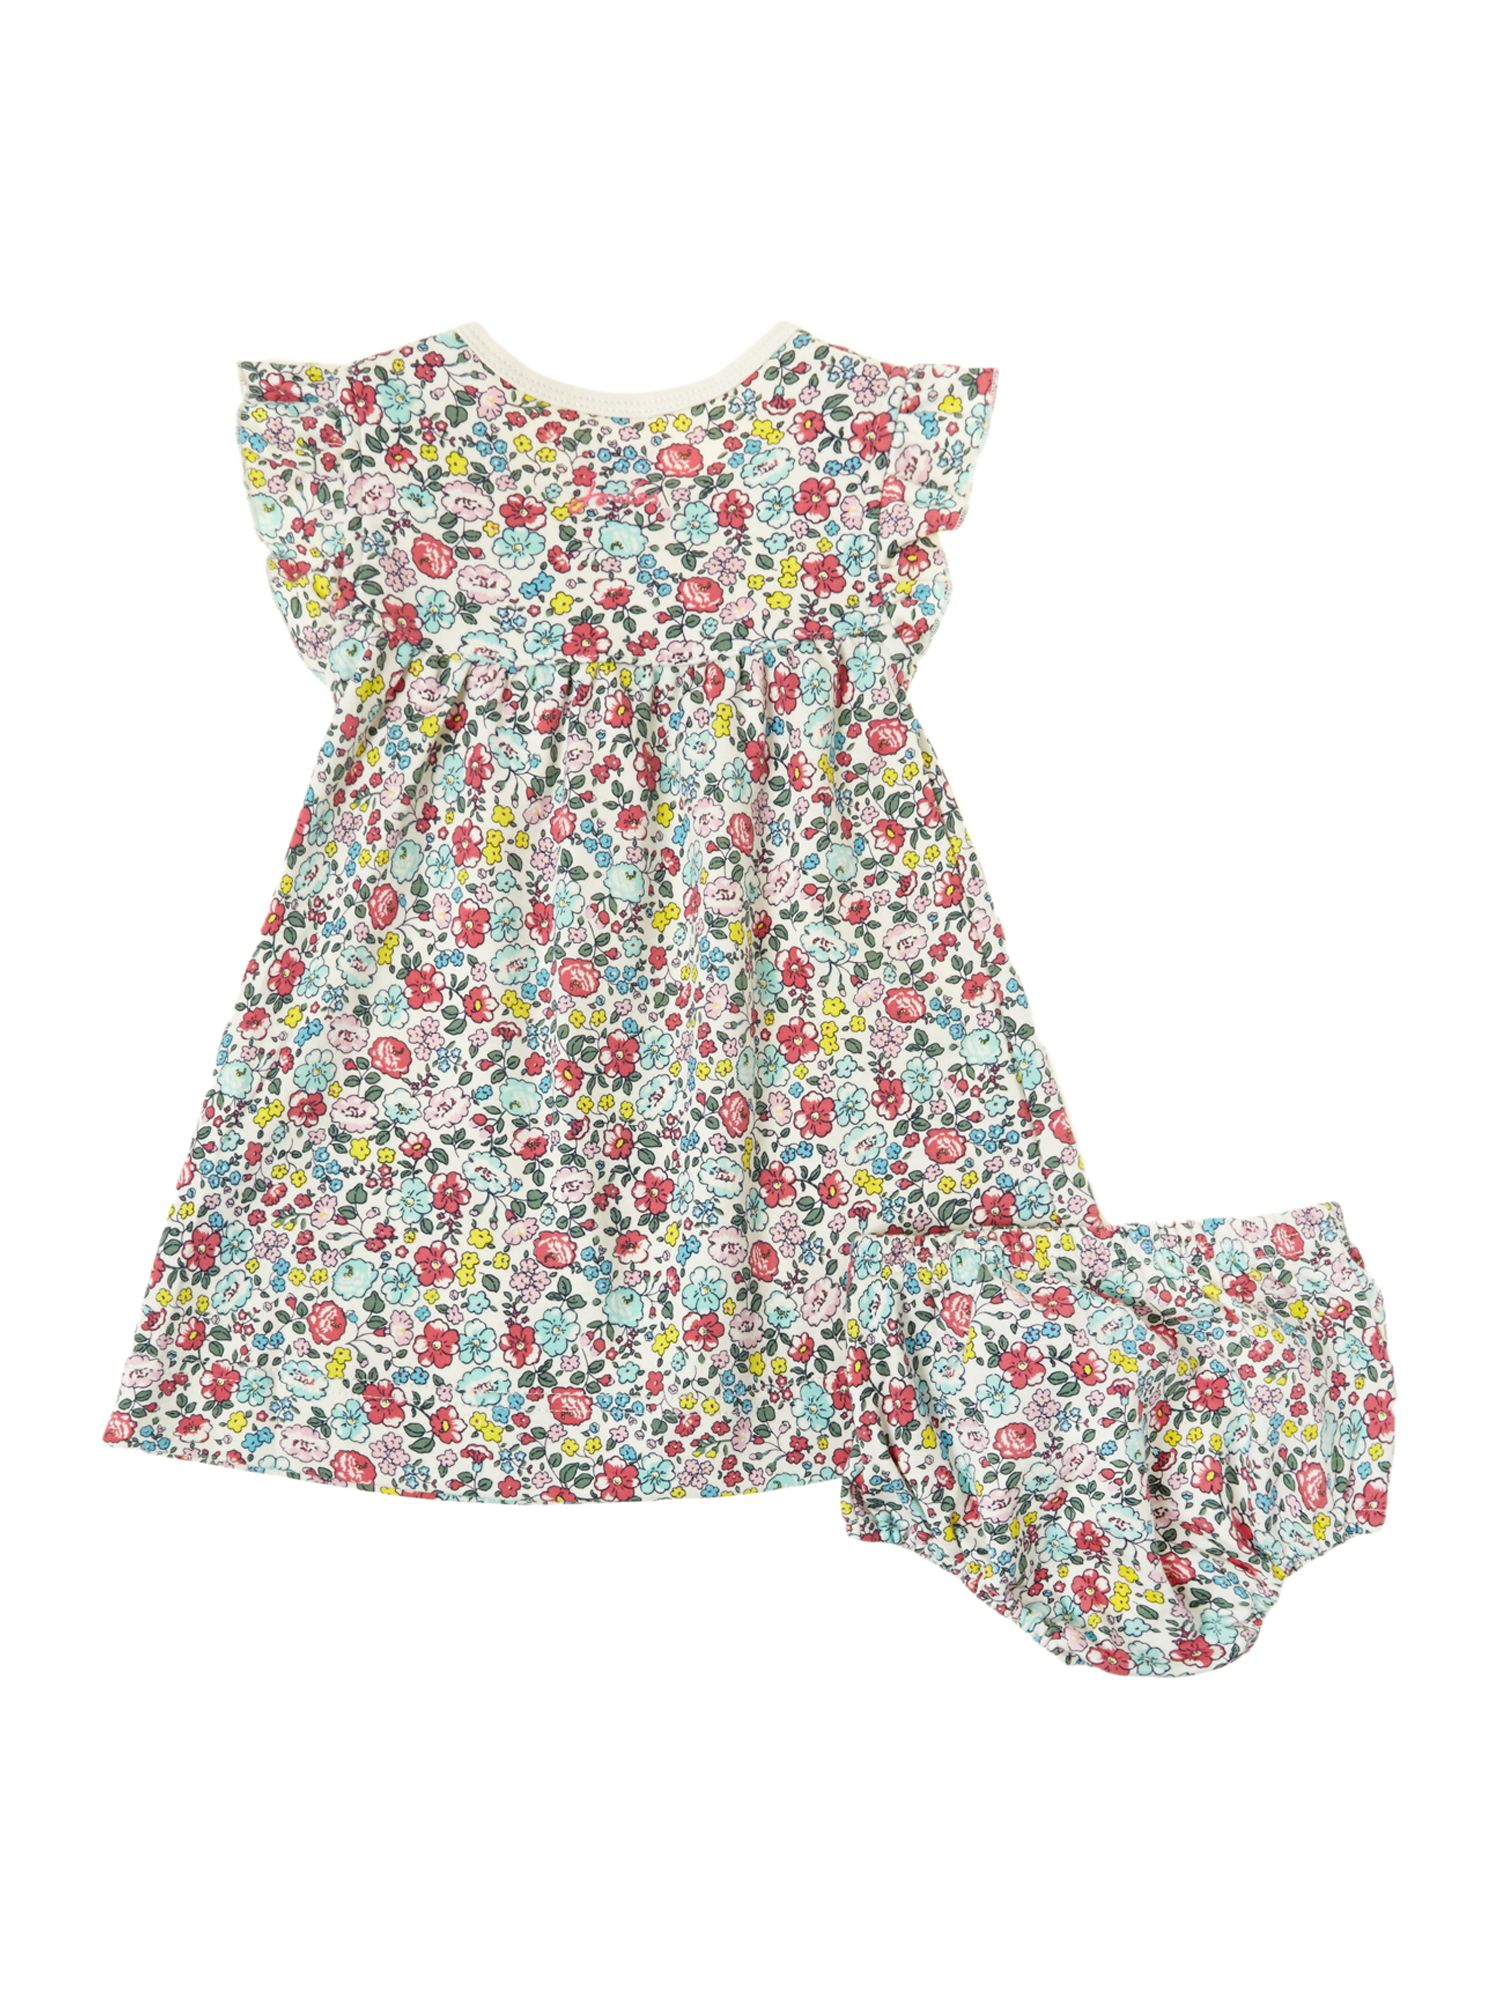 Girls floral print dress with bloomers